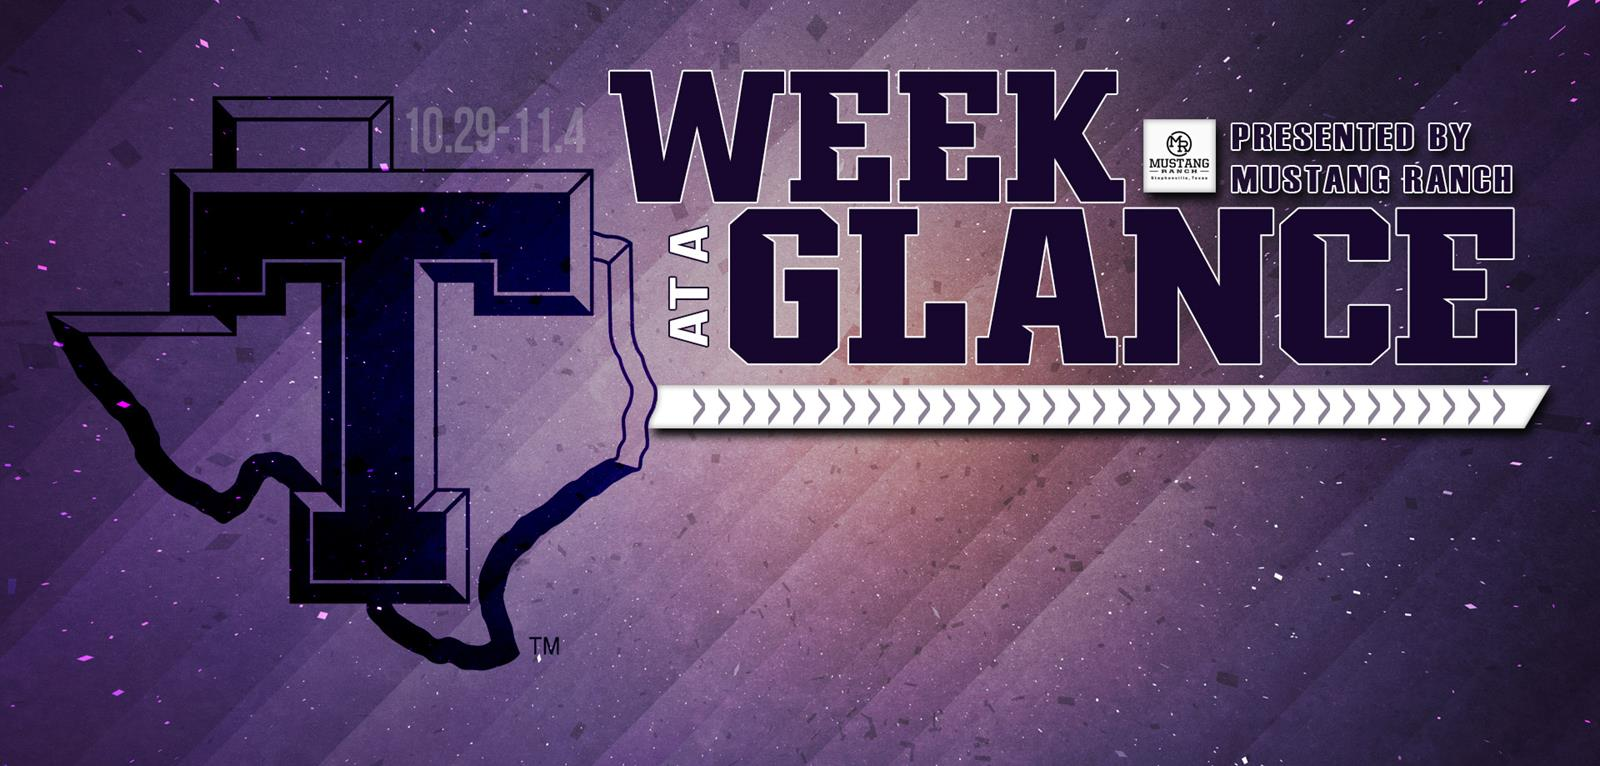 8394a0384c4 WEEK AT A GLANCE: Full schedule of athletics on deck for Tarleton including  start of basketball, cross country looking to add more LSC titles, home  football